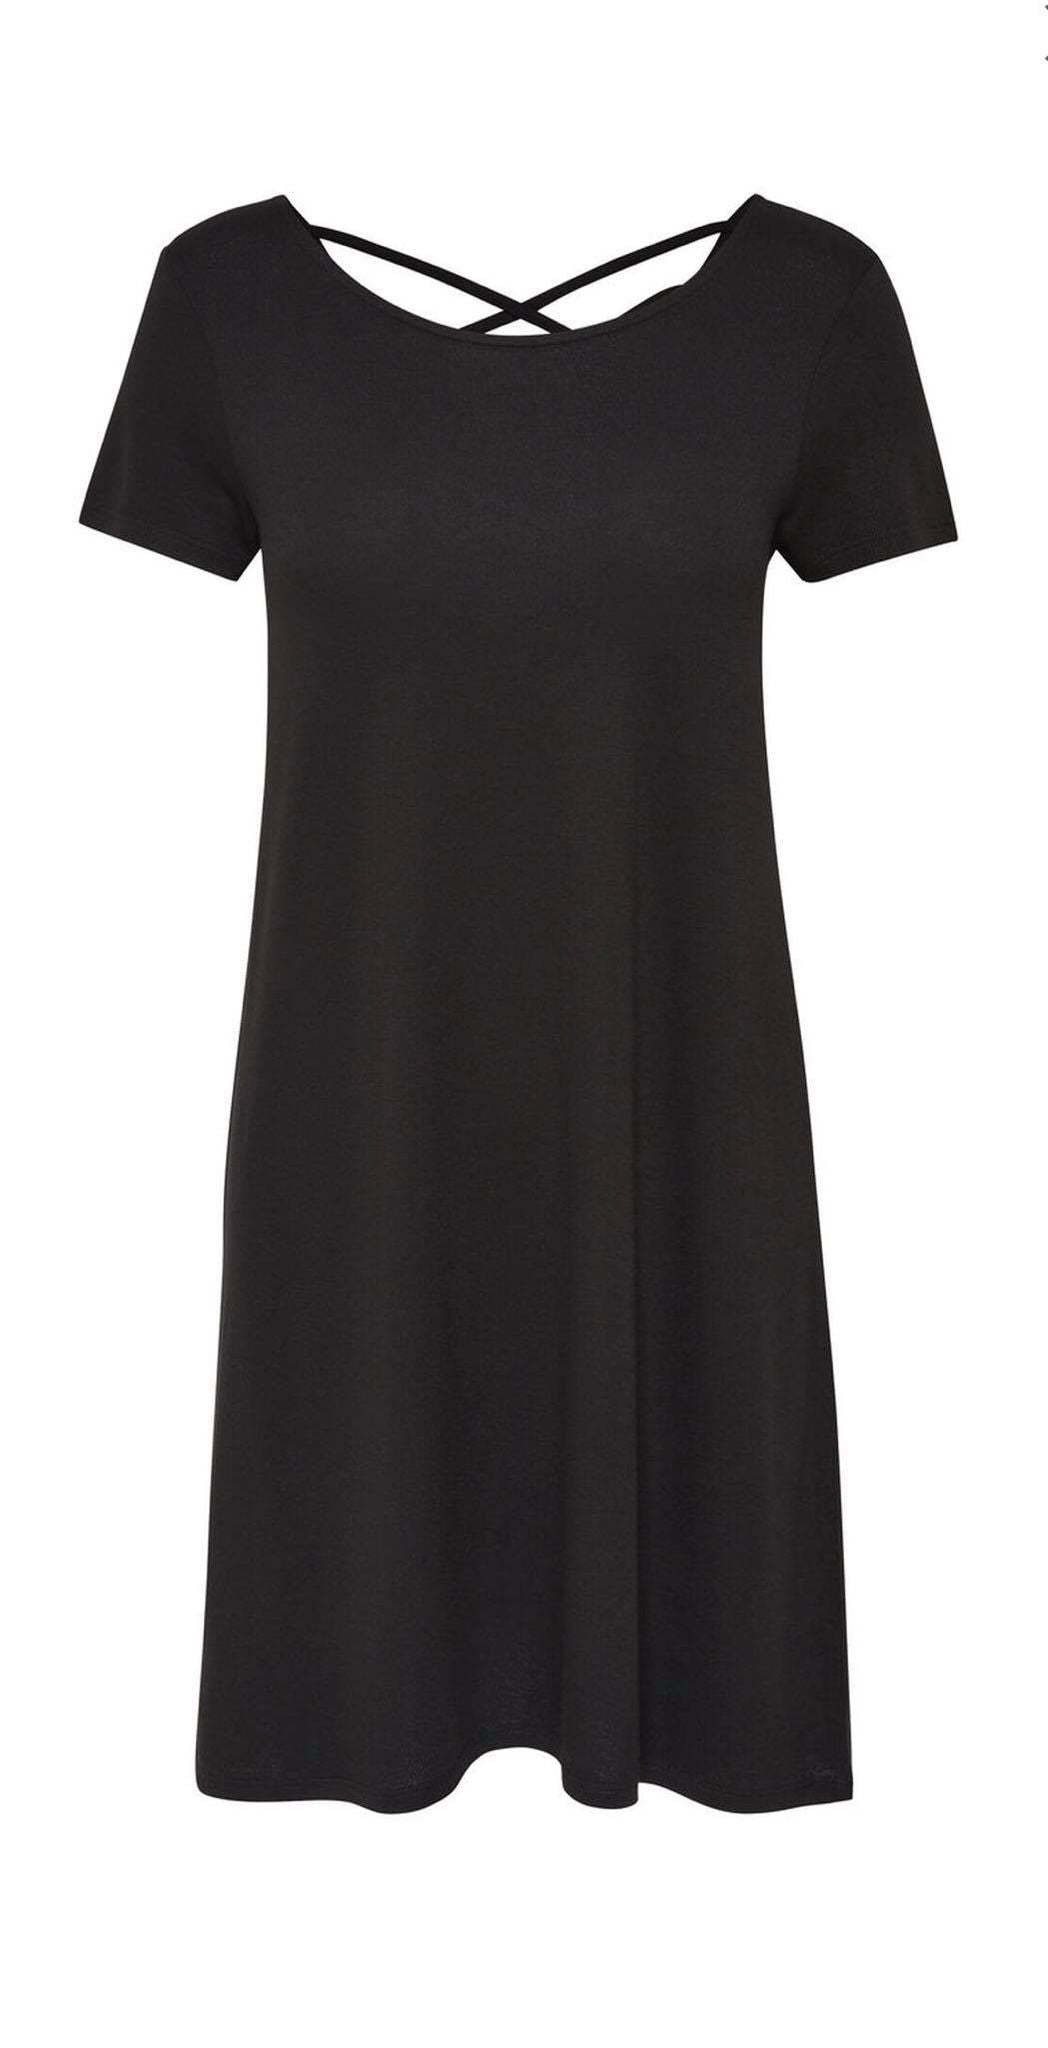 Robe manches courtes ONLY - Noir